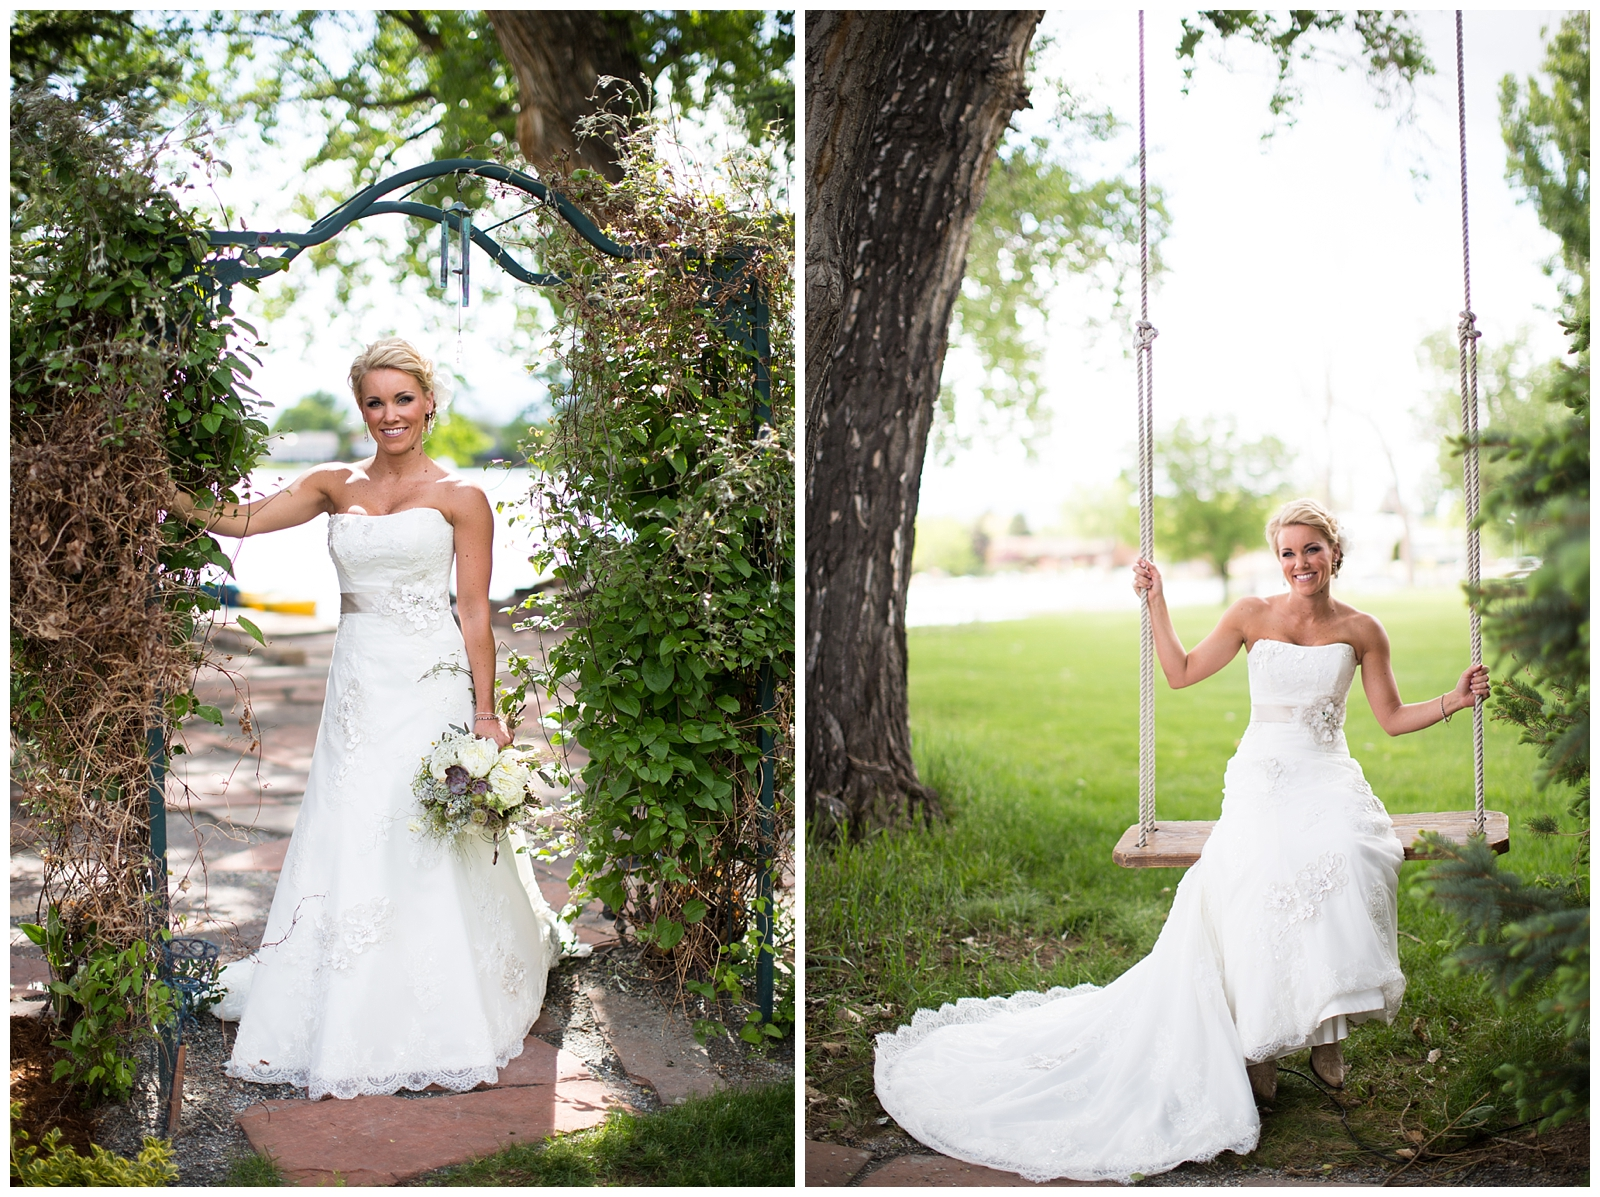 houstonweddingphotography_0206.jpg